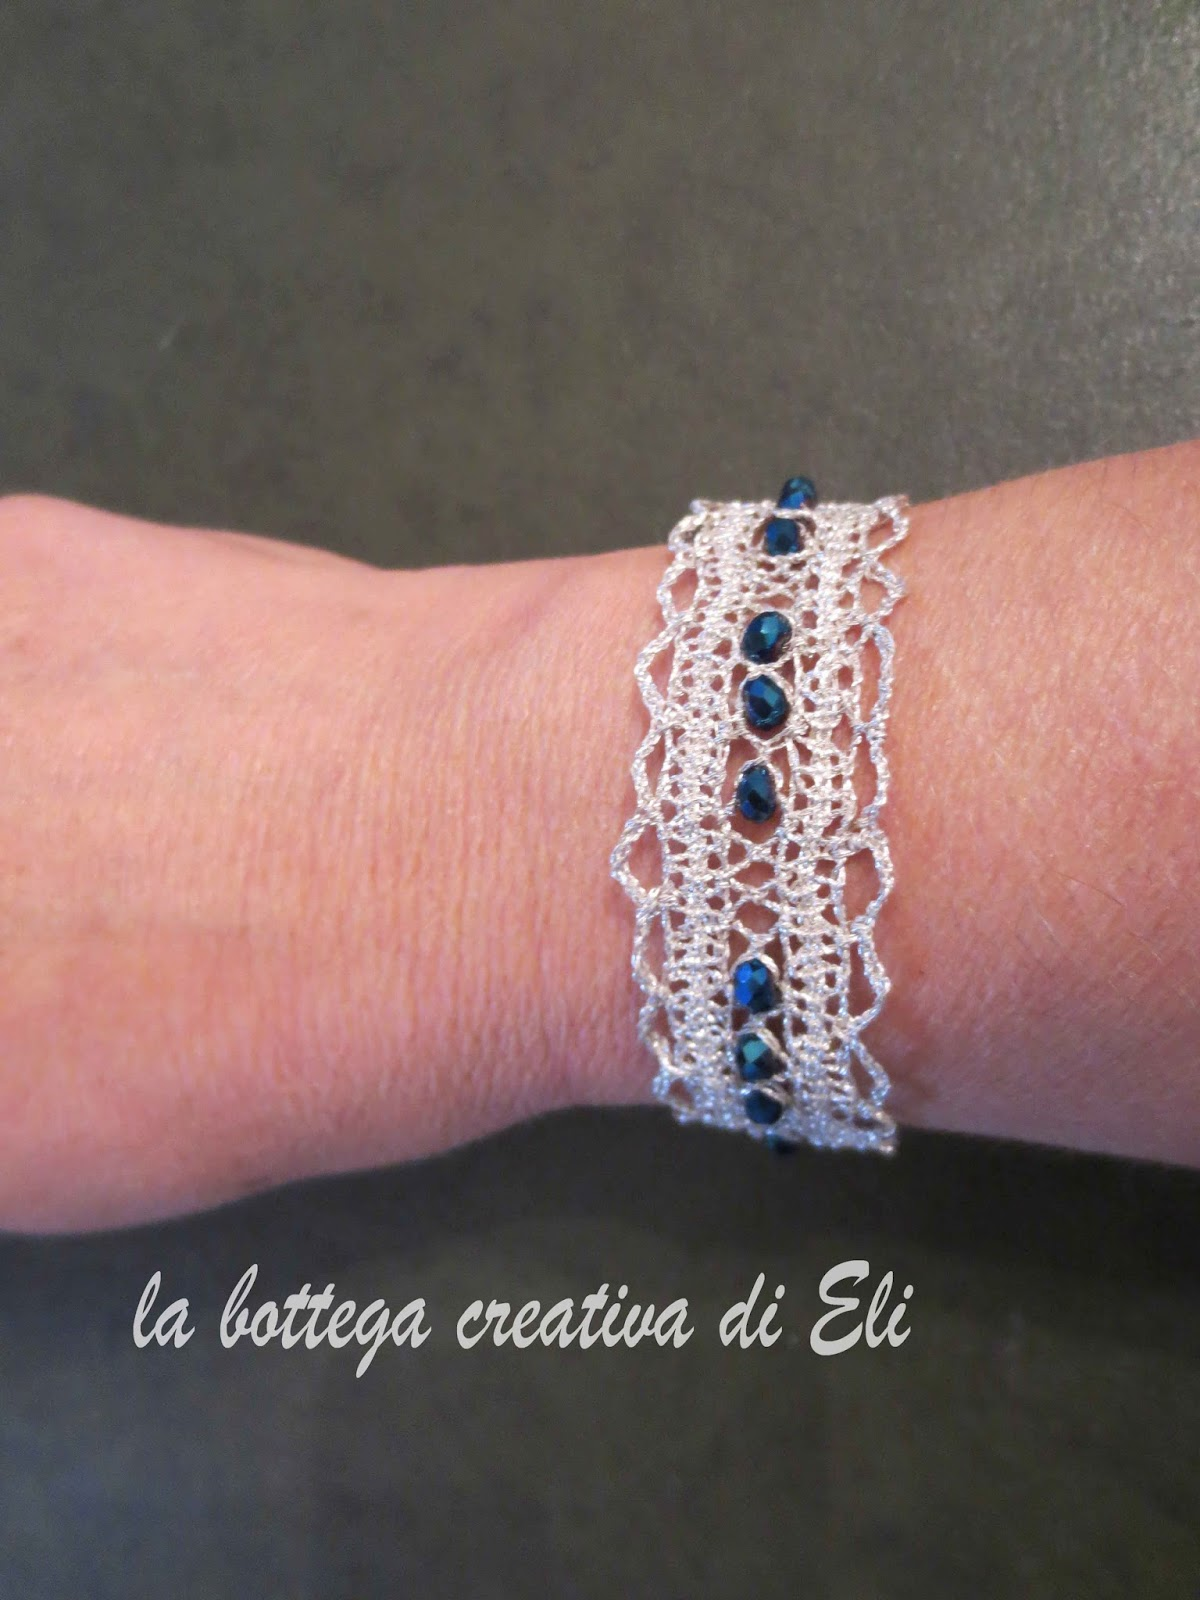 http://labottegacreativadieli.blogspot.it/2014/11/bracciale-tombolo.html